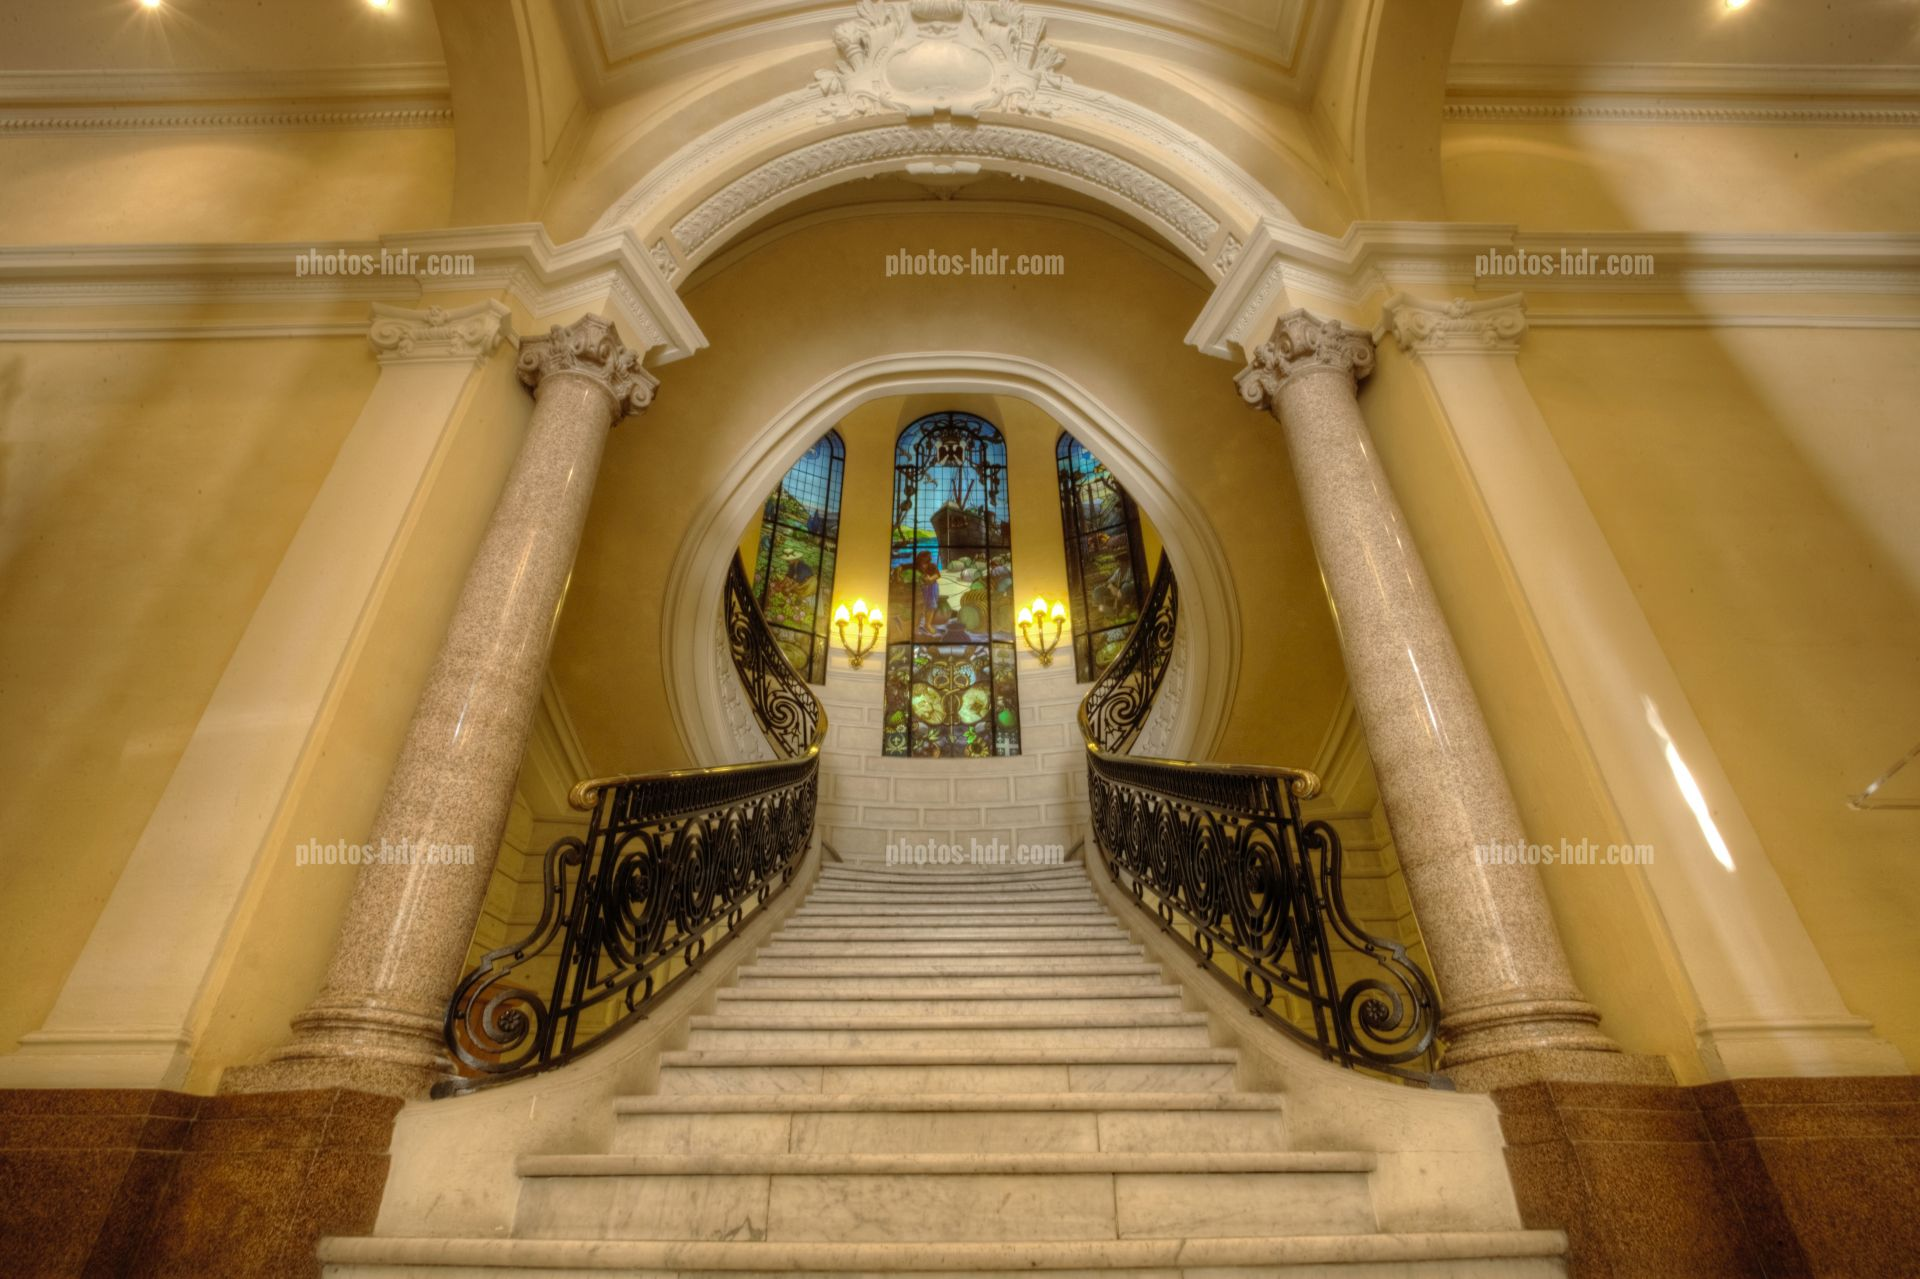 Photo grand escalier cci nice cote d 39 azur photos hdr - Chambre de commerce italienne de nice ...